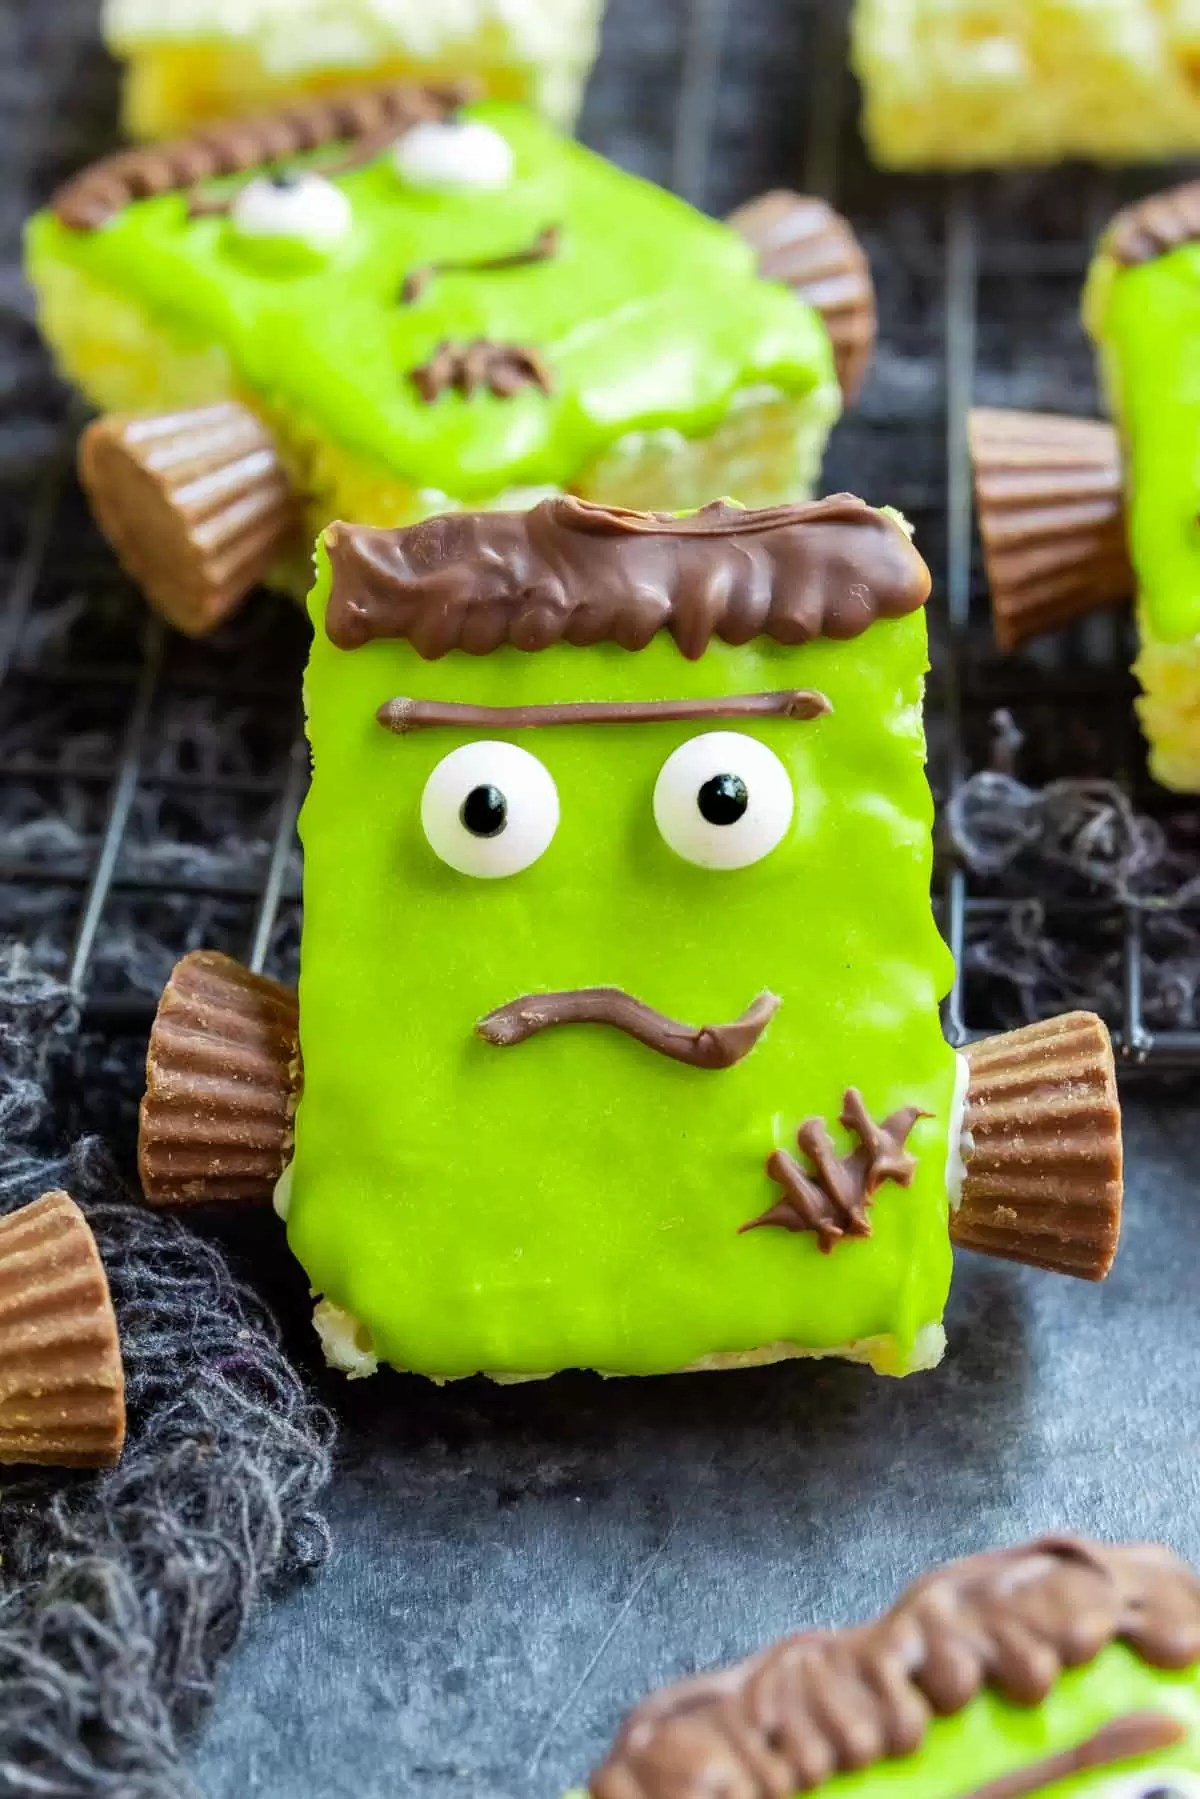 Frankenstein Rice Krispies Treats decorated with colored candy melts